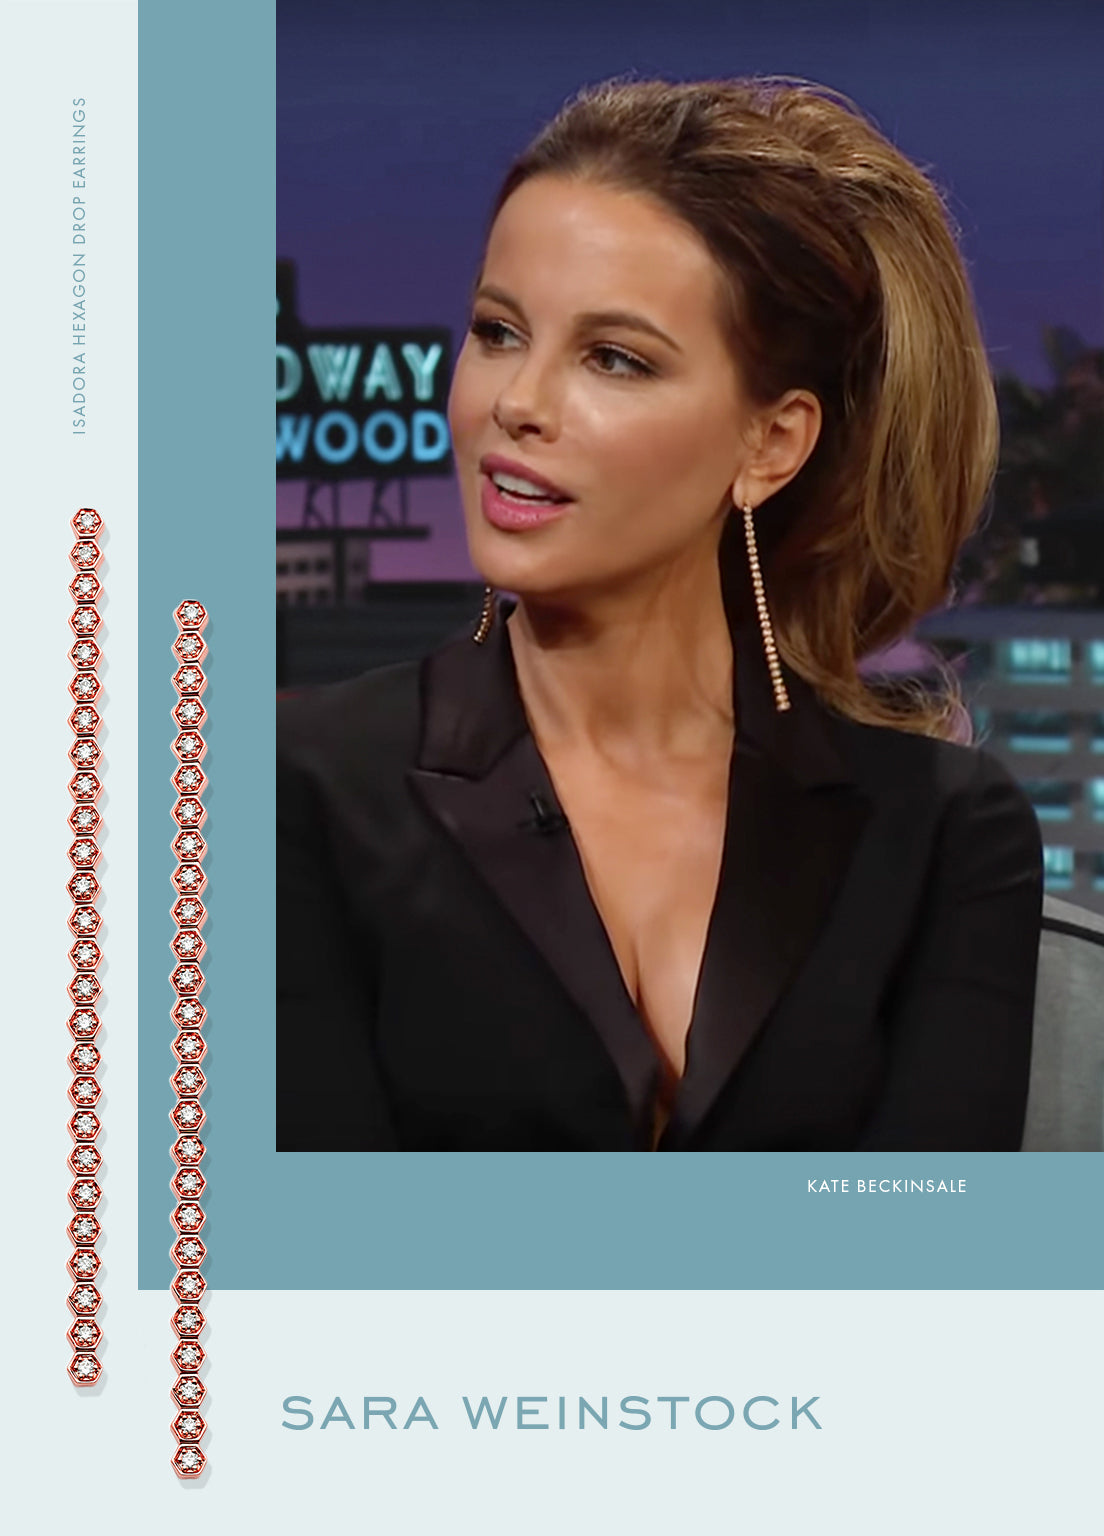 Kate Beckinsale on The Late Late Show with James Corden